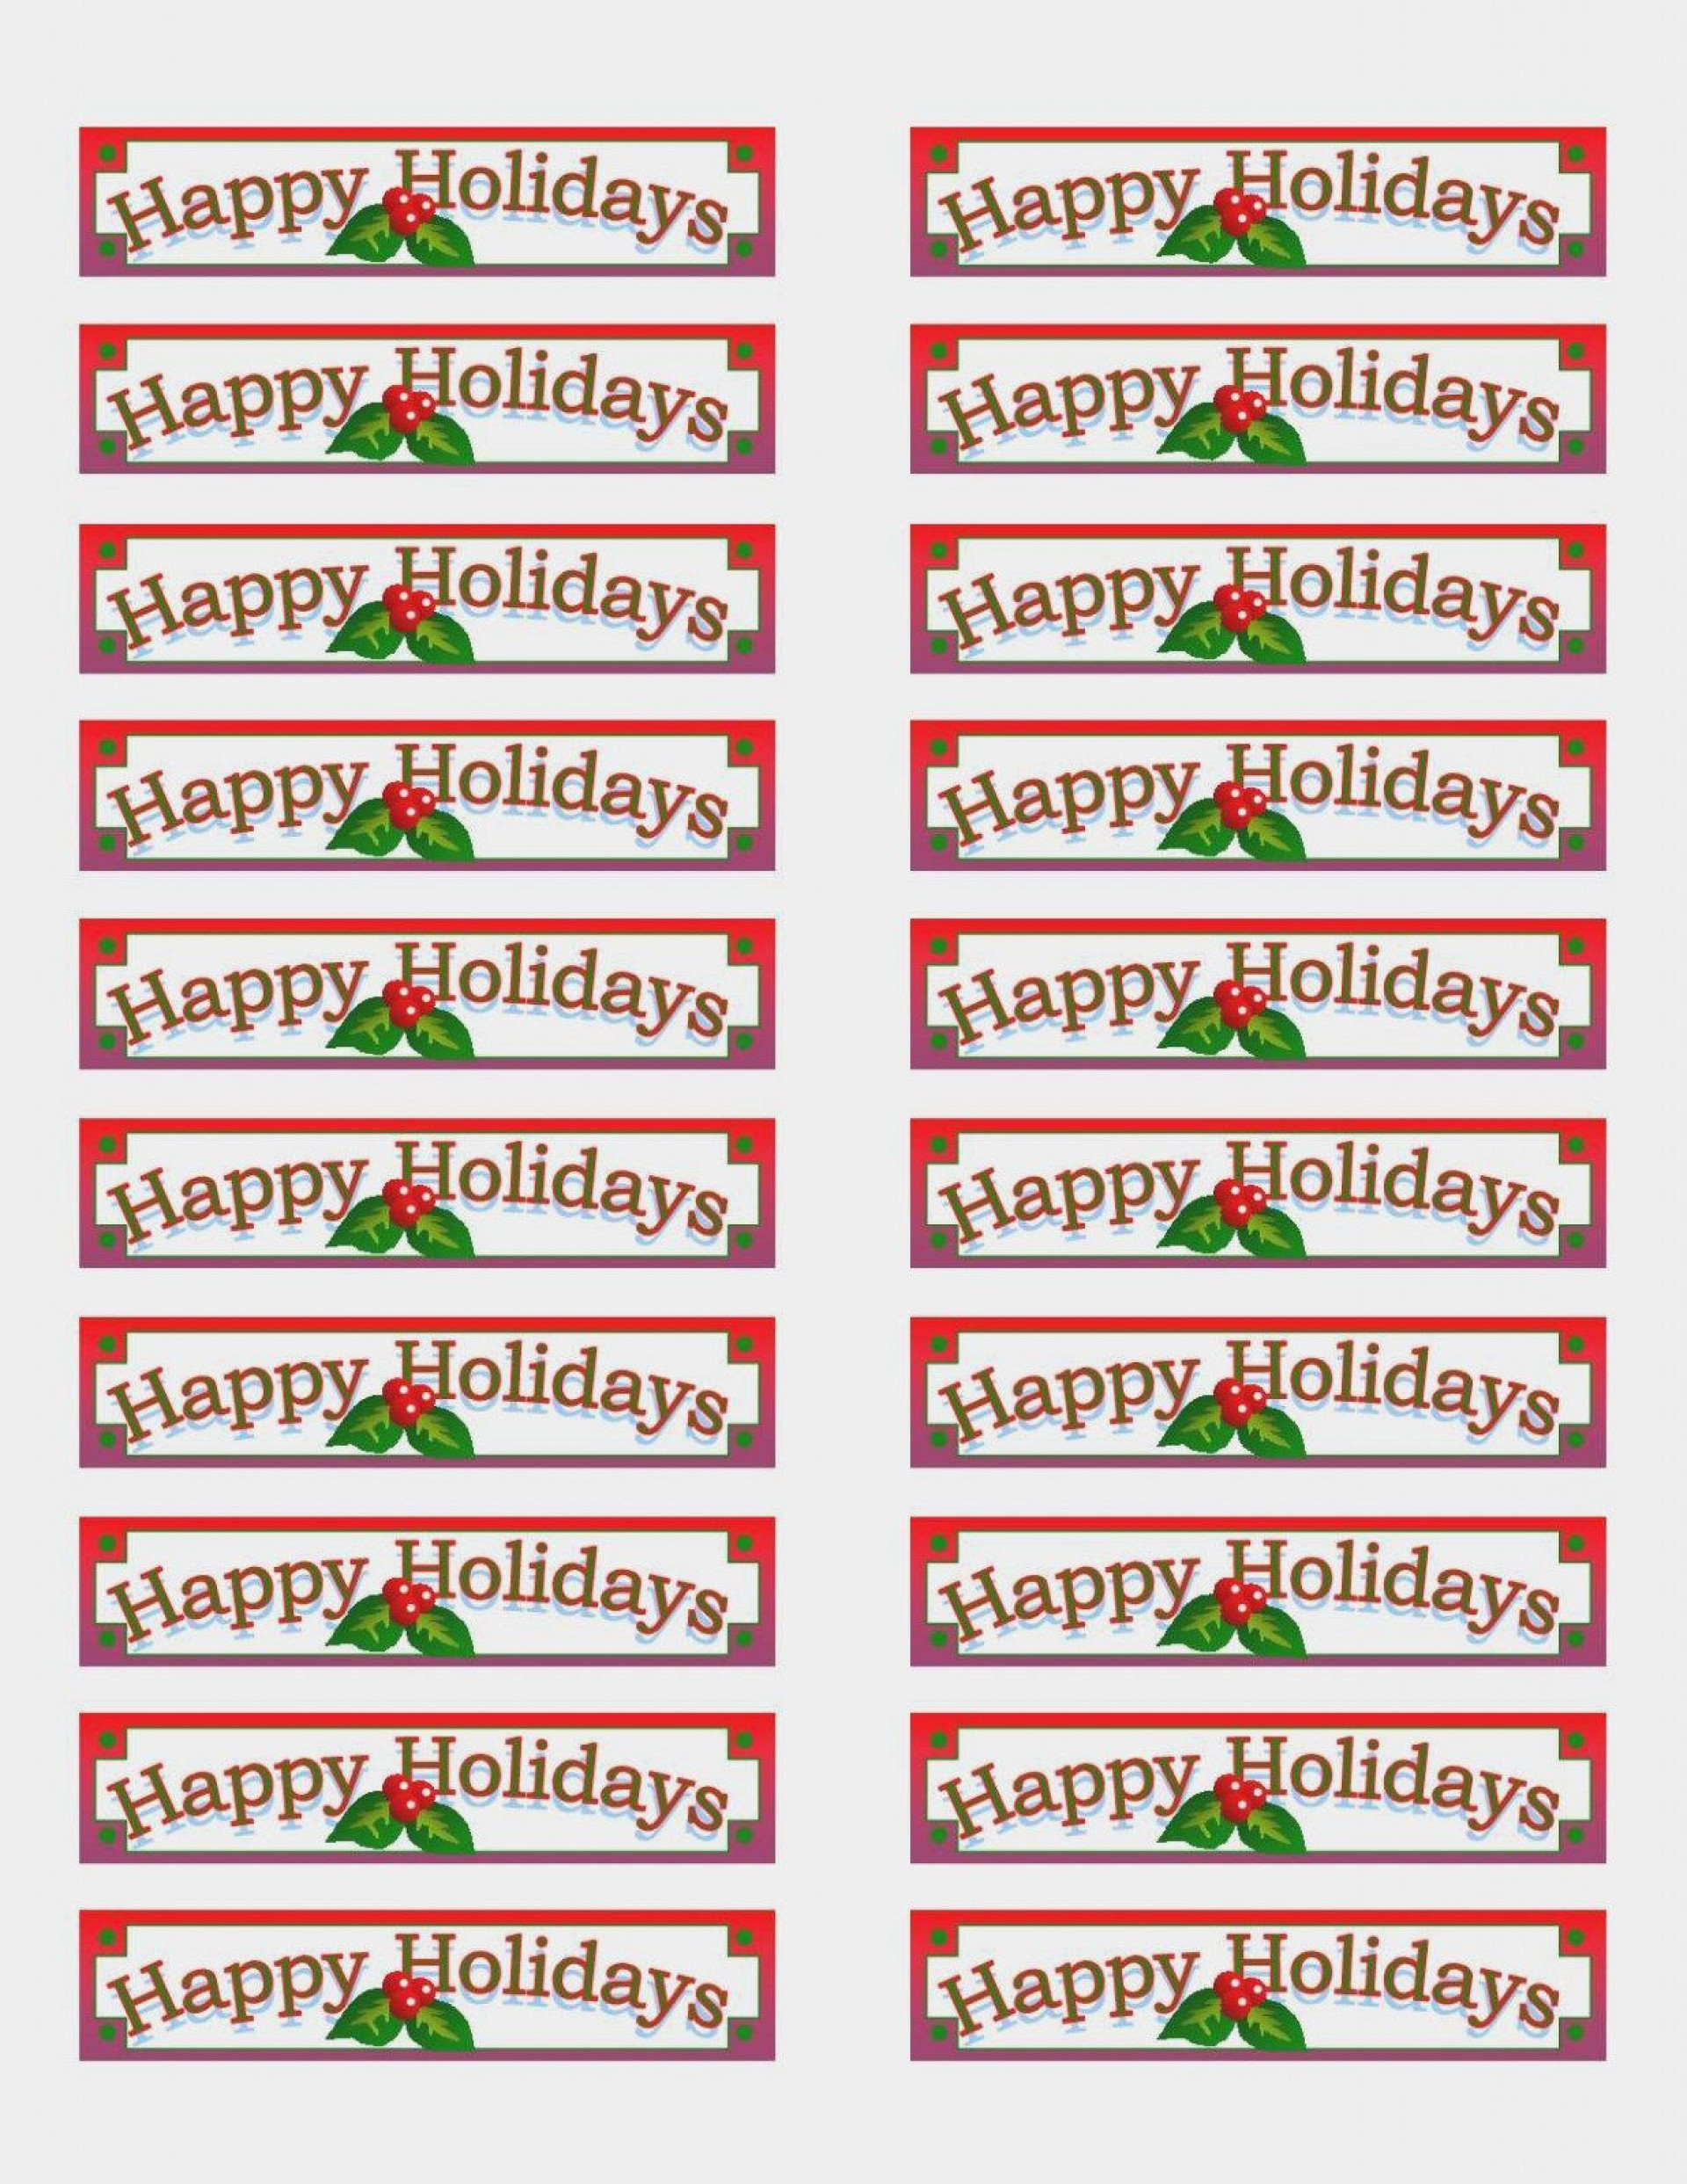 004 Archaicawful Christma Addres Label Template Example  Free Download Shipping Card1920